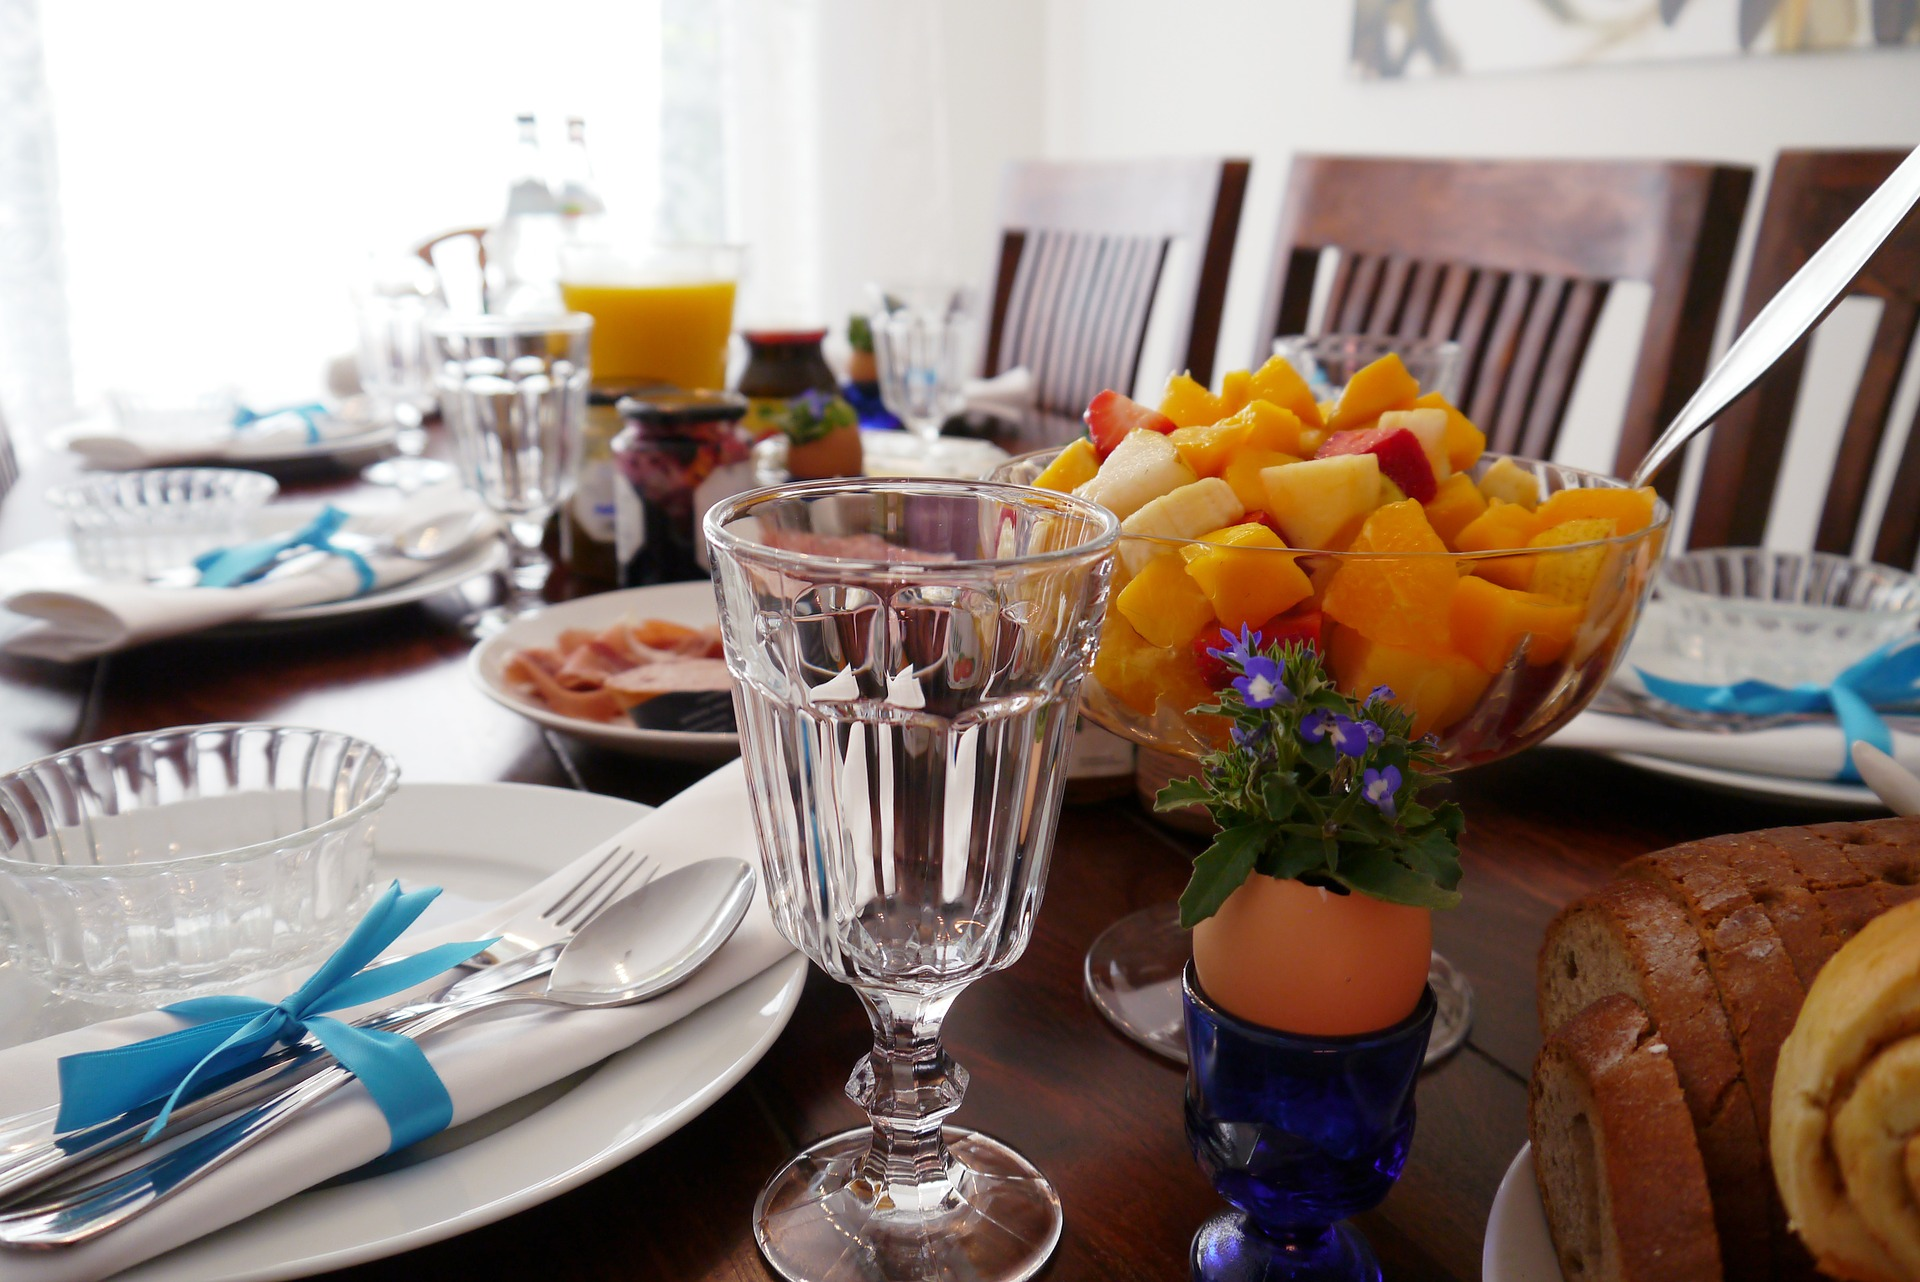 Tips For an Organizing Brunch